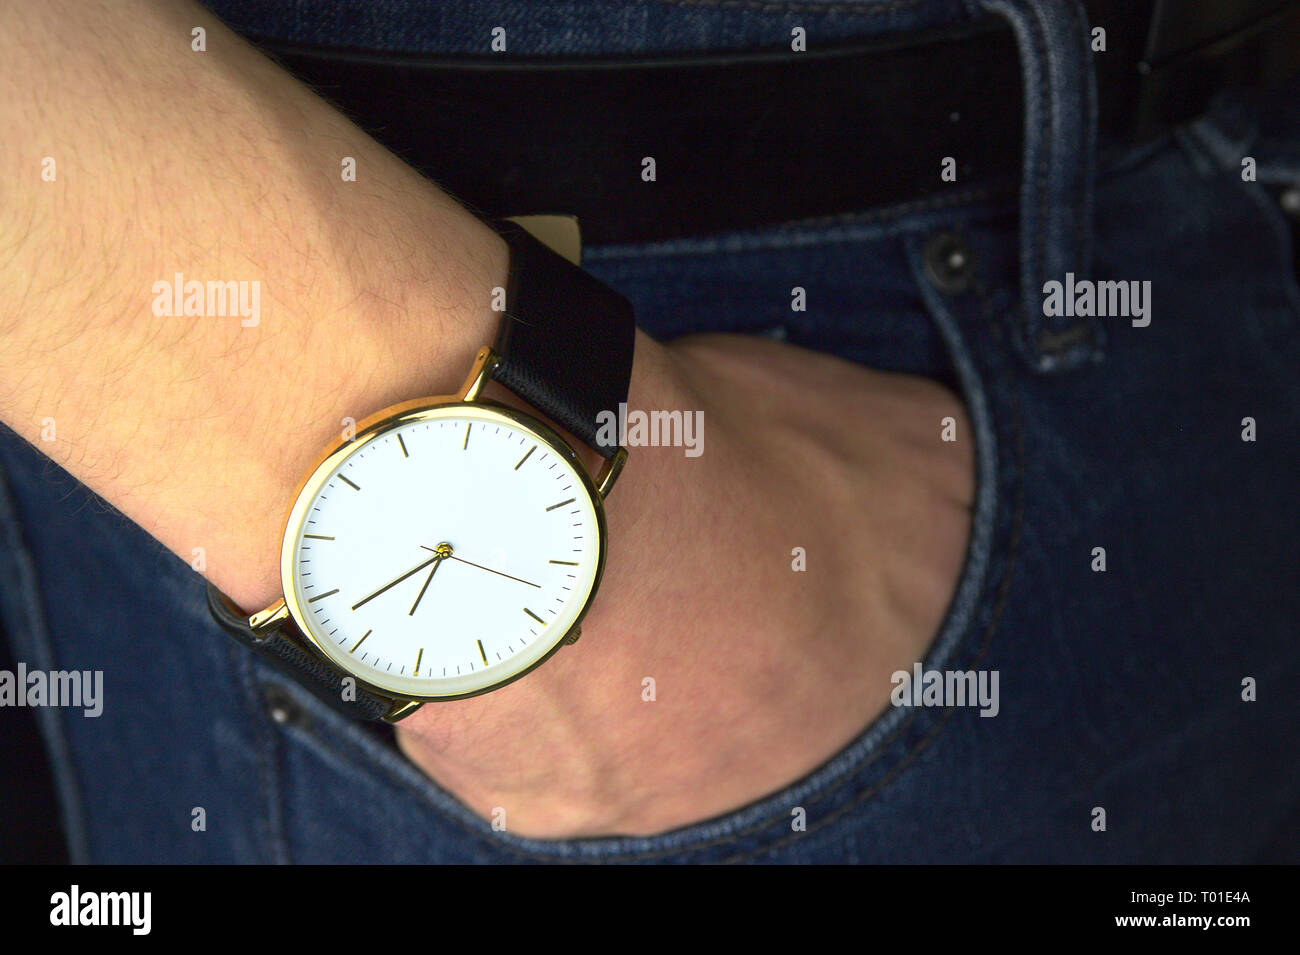 Close-up of wristwatch on wrist. - Stock Image